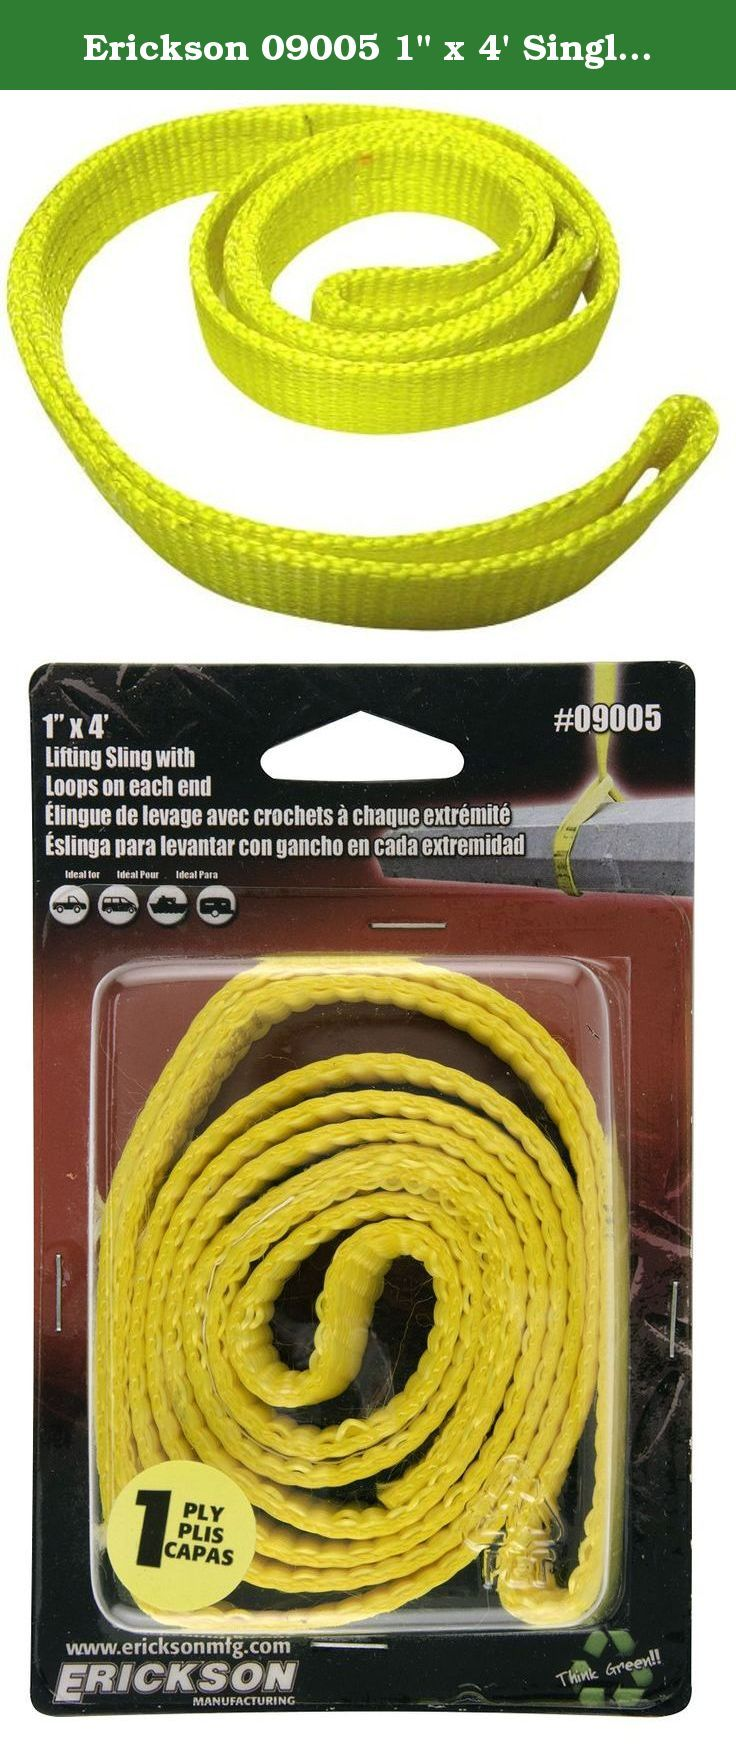 Pin On Slings Runners Rope Cord Webbing Climbing Outdoor Recreation Sports Outdoors